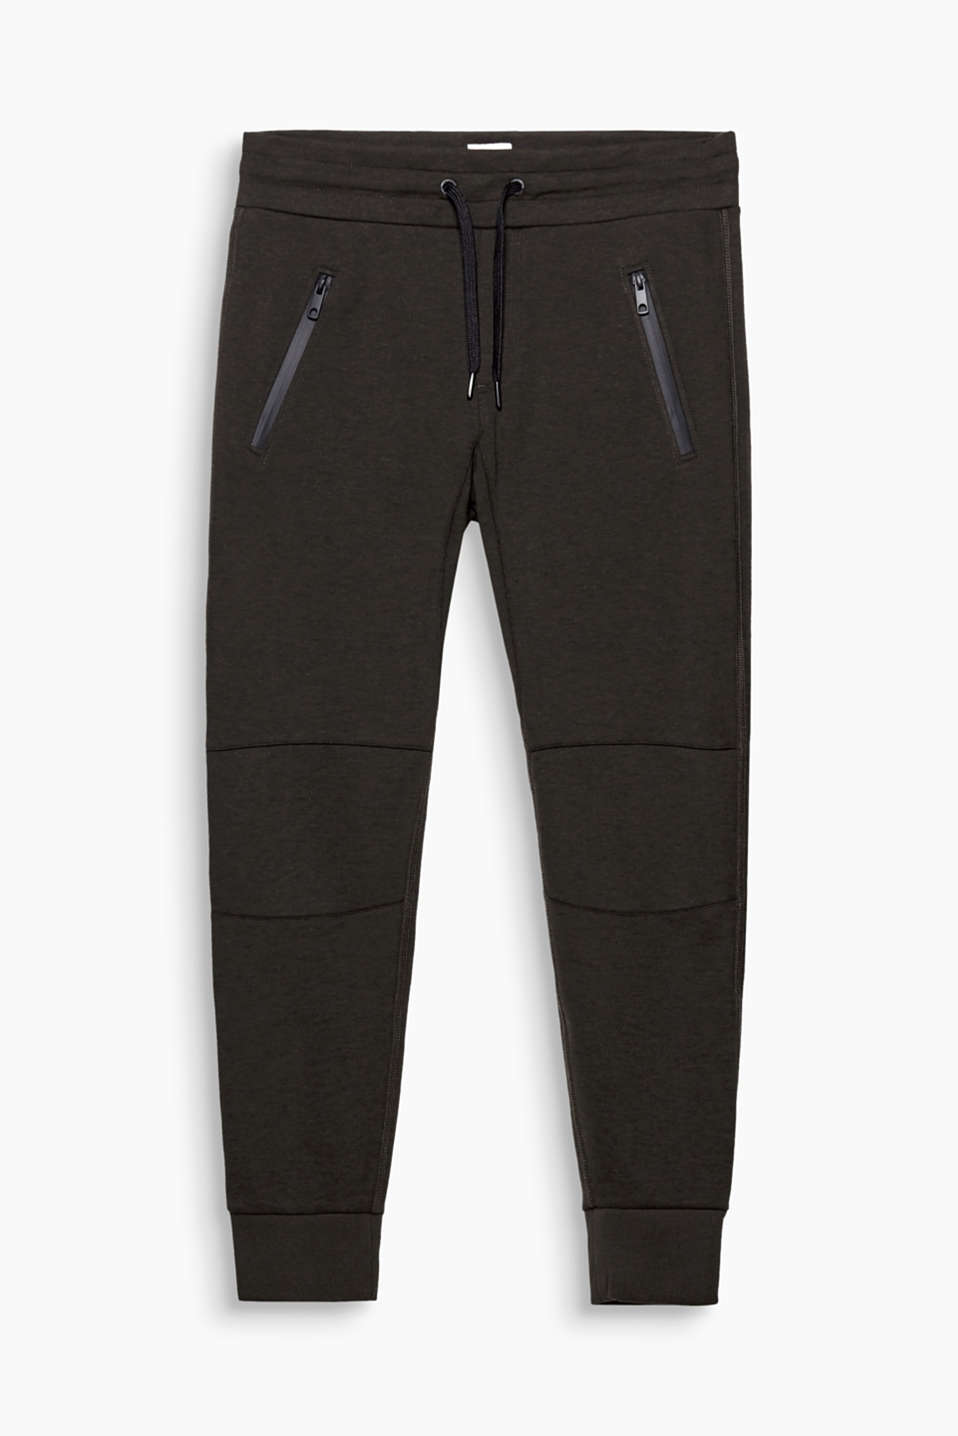 Sporty and trendy at the same time: tracksuit bottoms highlight your urban street style.